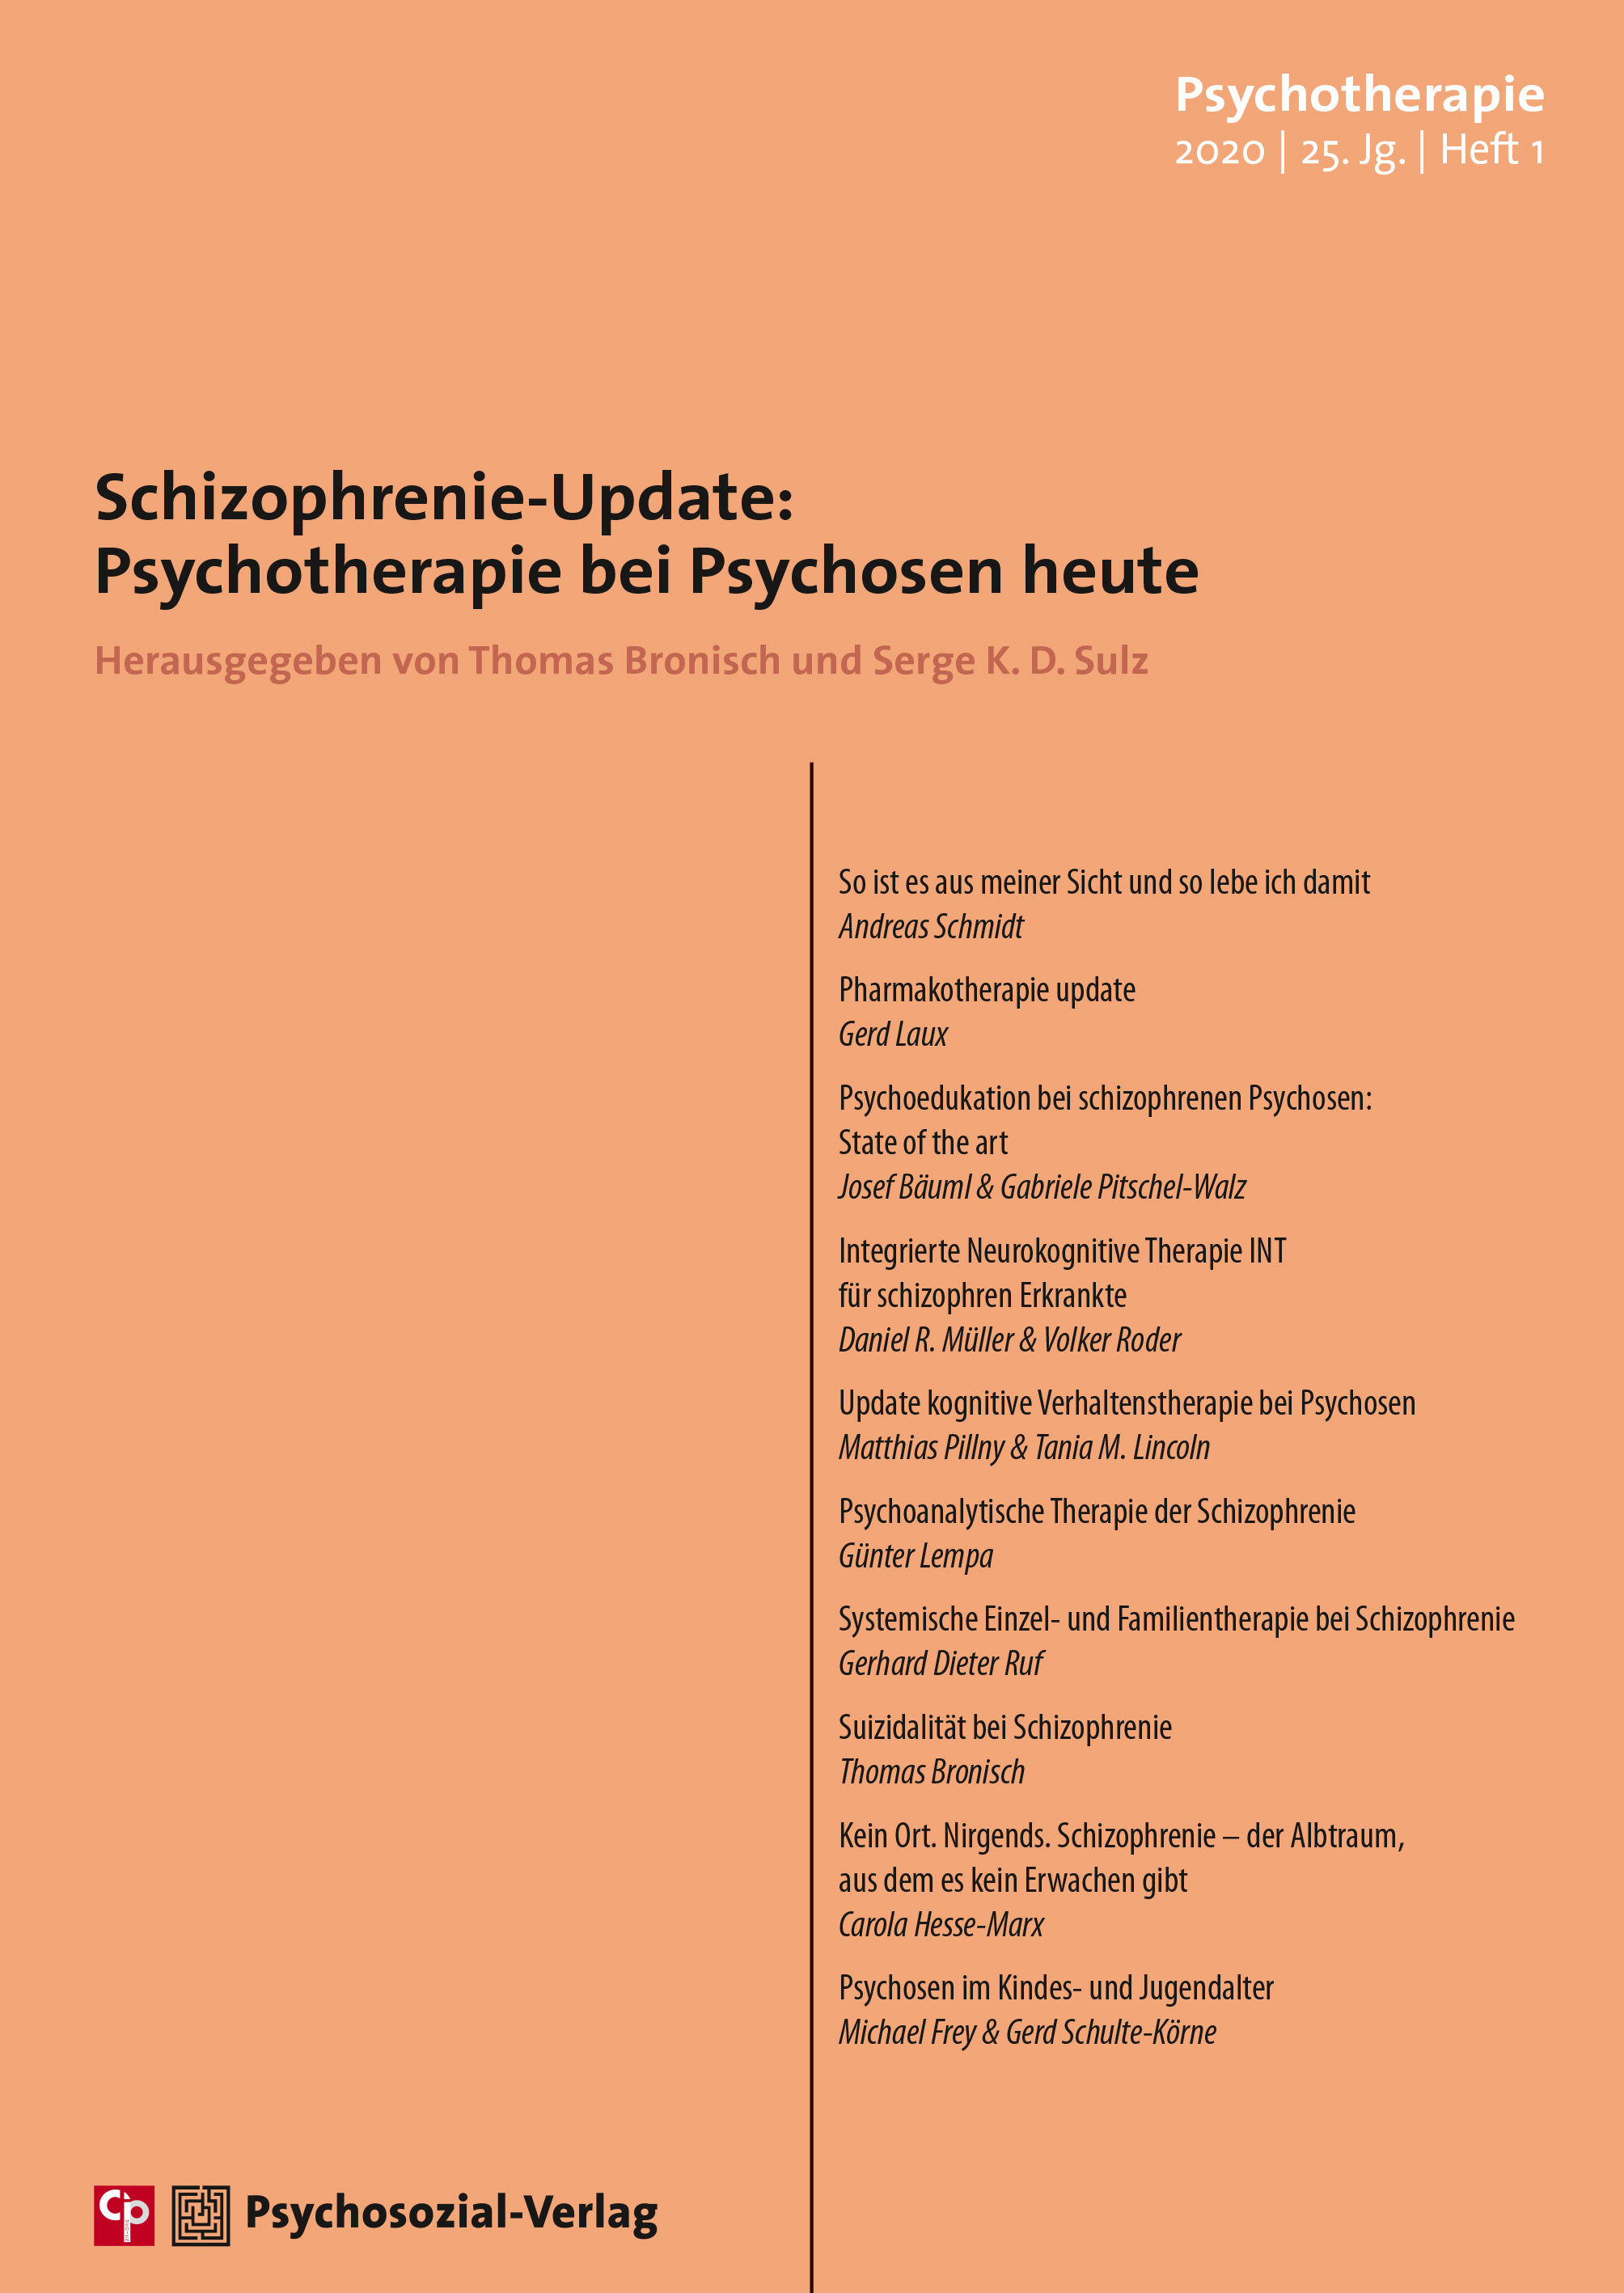 https://www.psychosozial-verlag.de/catalog/images/products/onix/8314.jpg